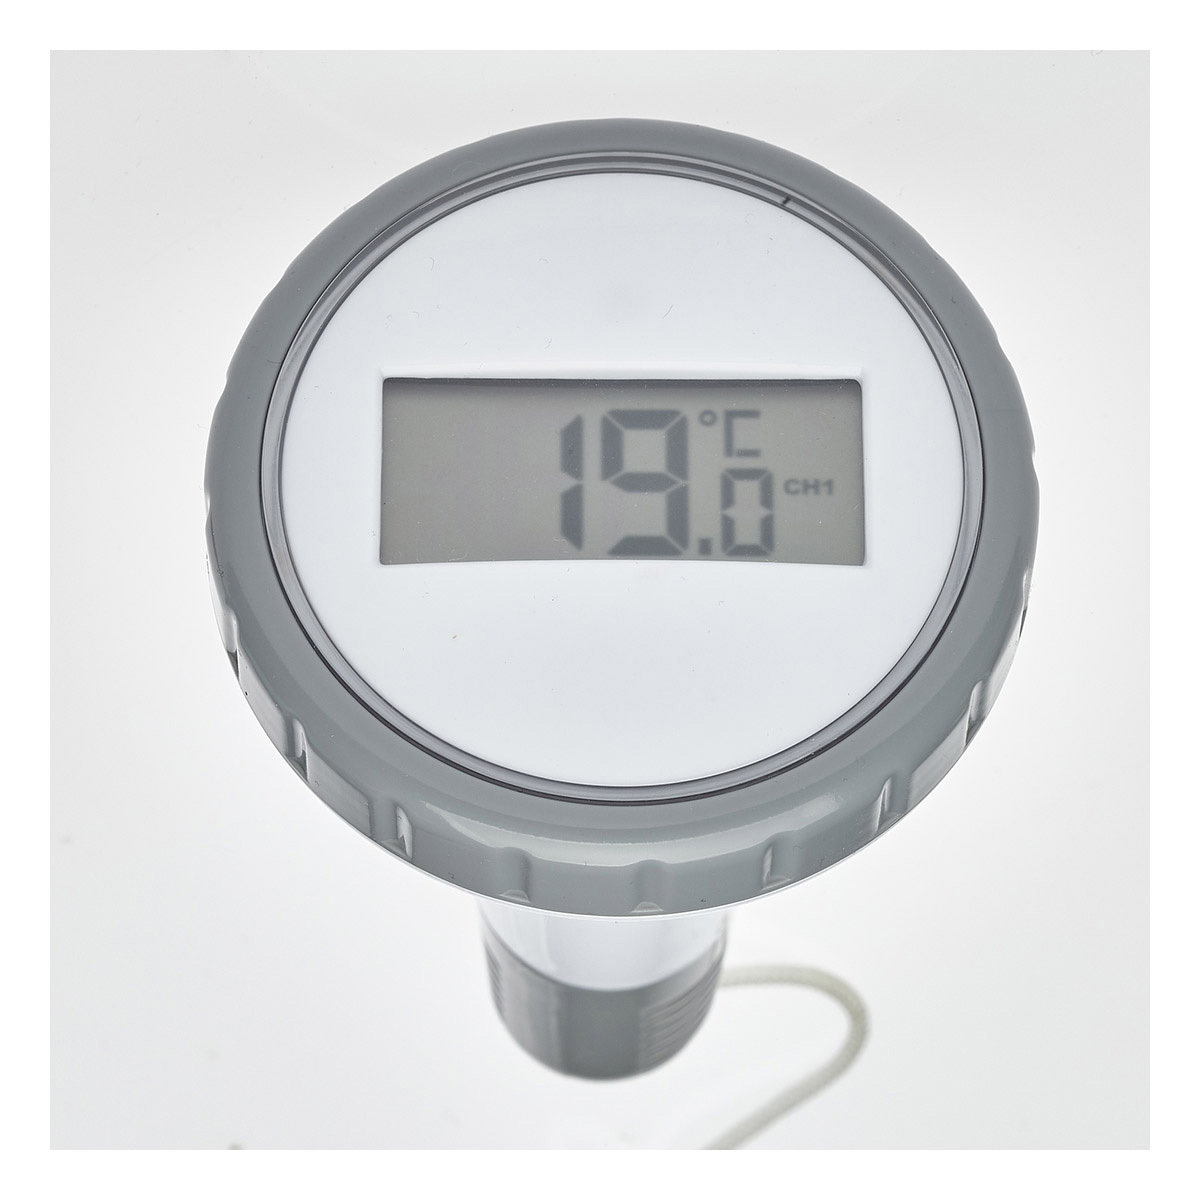 30-3067-10-funk-poolthermometer-palma-sender1-1200x1200px.jpg